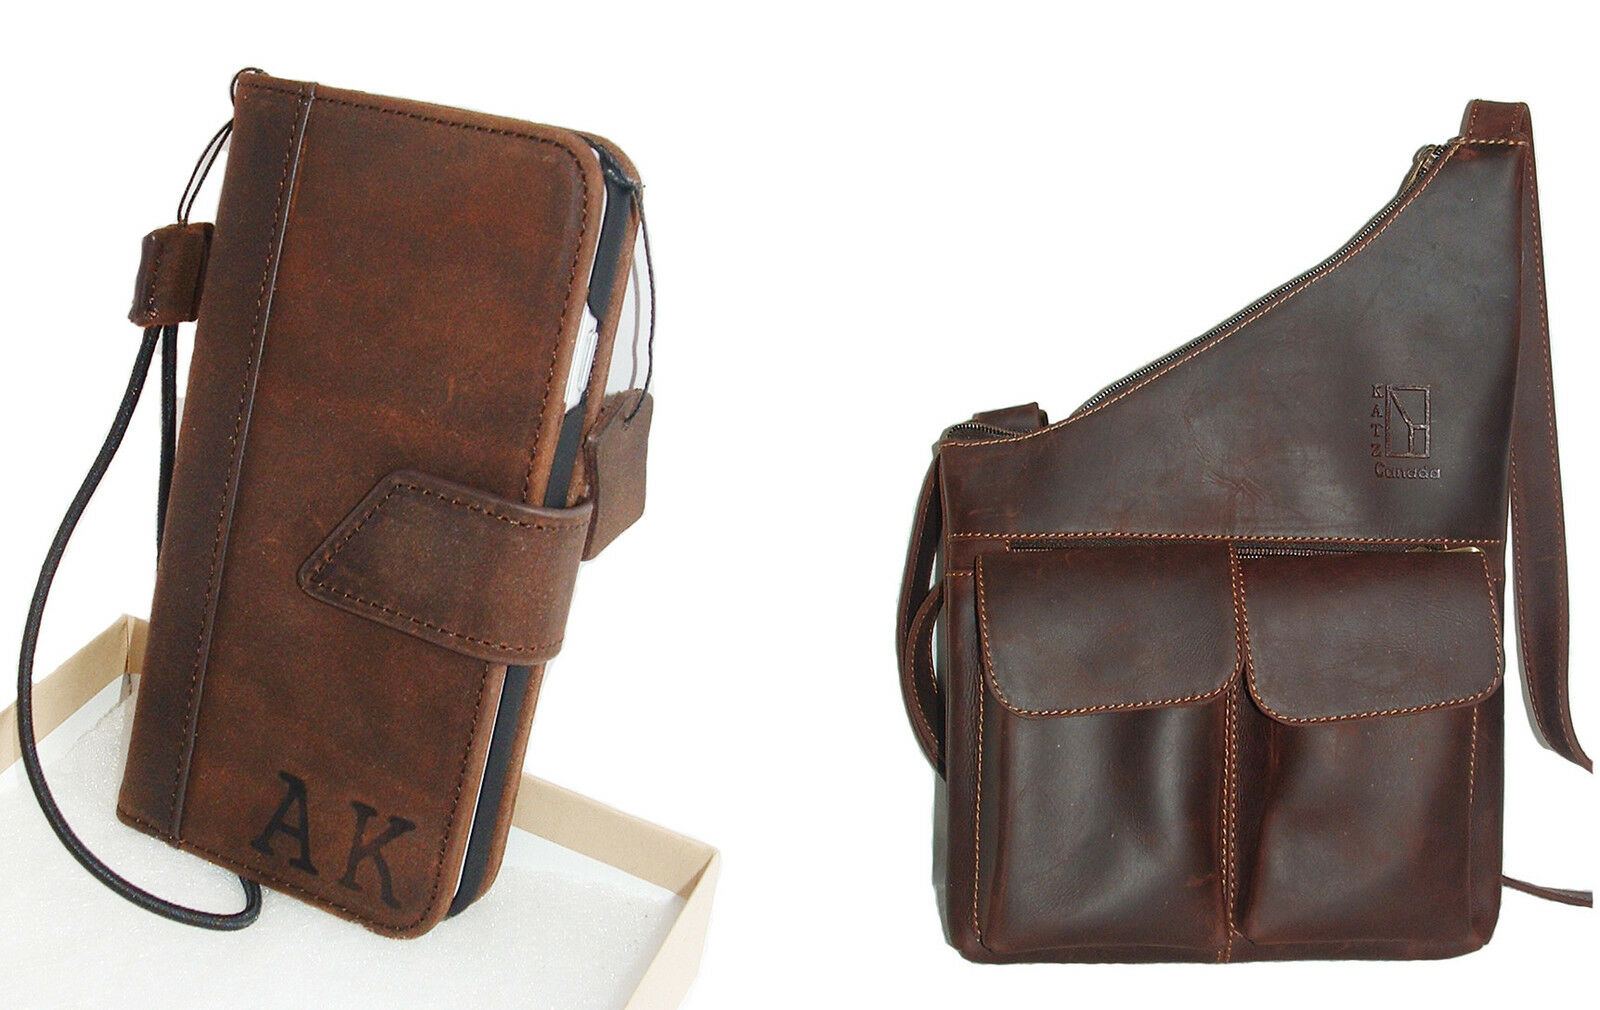 Personalized Genuine Leather Bags